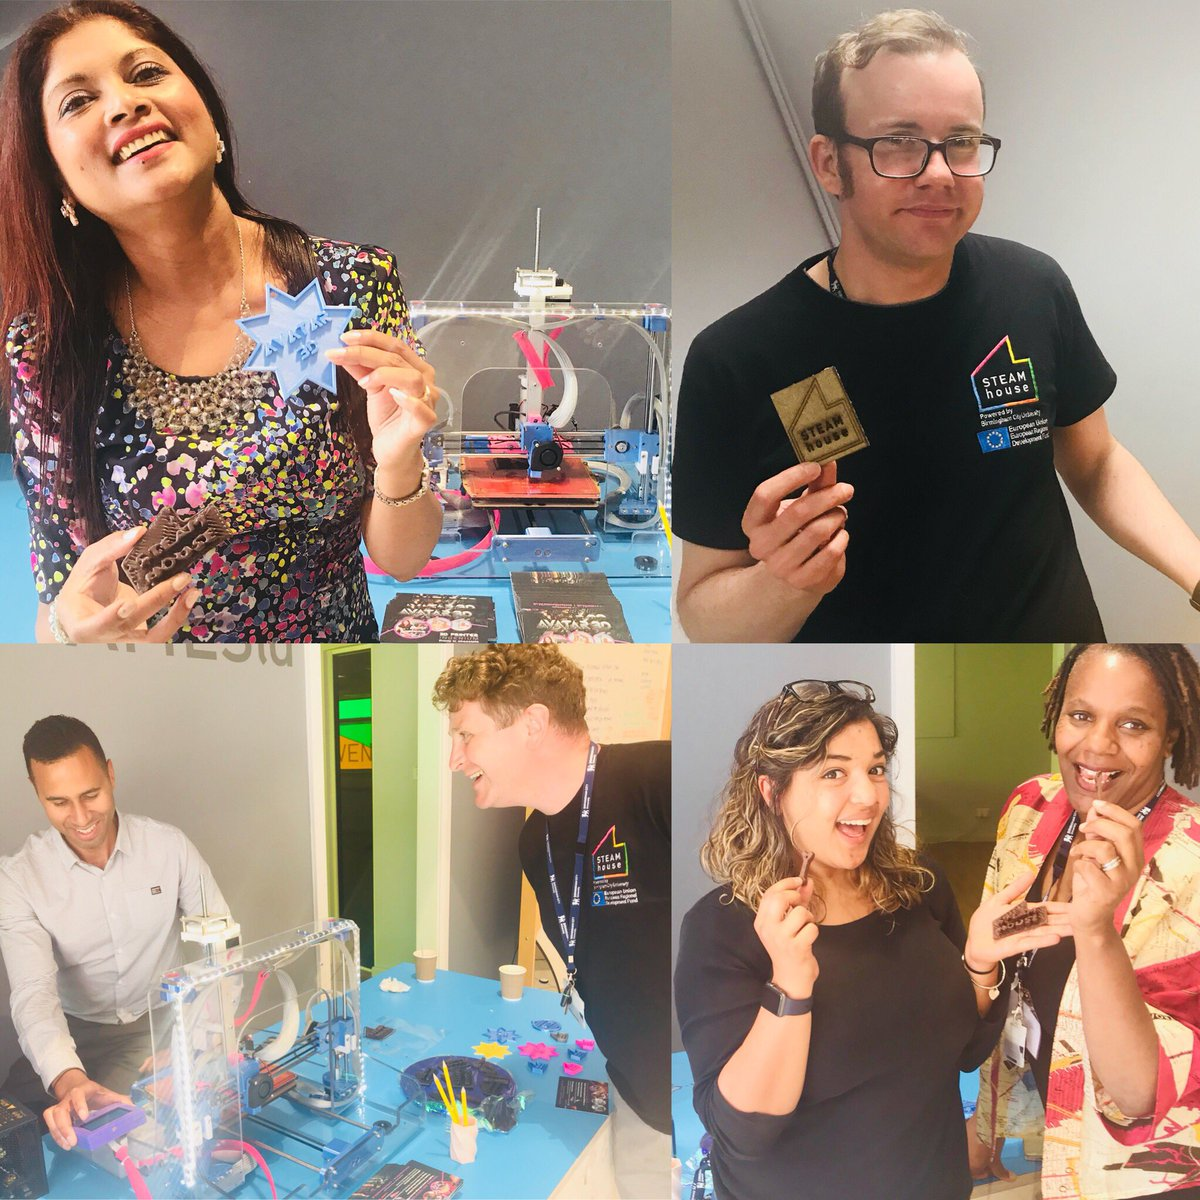 """The launch of the new BCU makerspace """"STEAMhouse"""" """"Driving Innovation through Creativity"""" Avatar3D Printing continues Innovation with STEAMhouse UK team of technician, Business consultants, advisors &amp; SME's @STEAMhouseUK @claytonshaw @WISDOMTARR<br>http://pic.twitter.com/ym3lmNK9tm"""